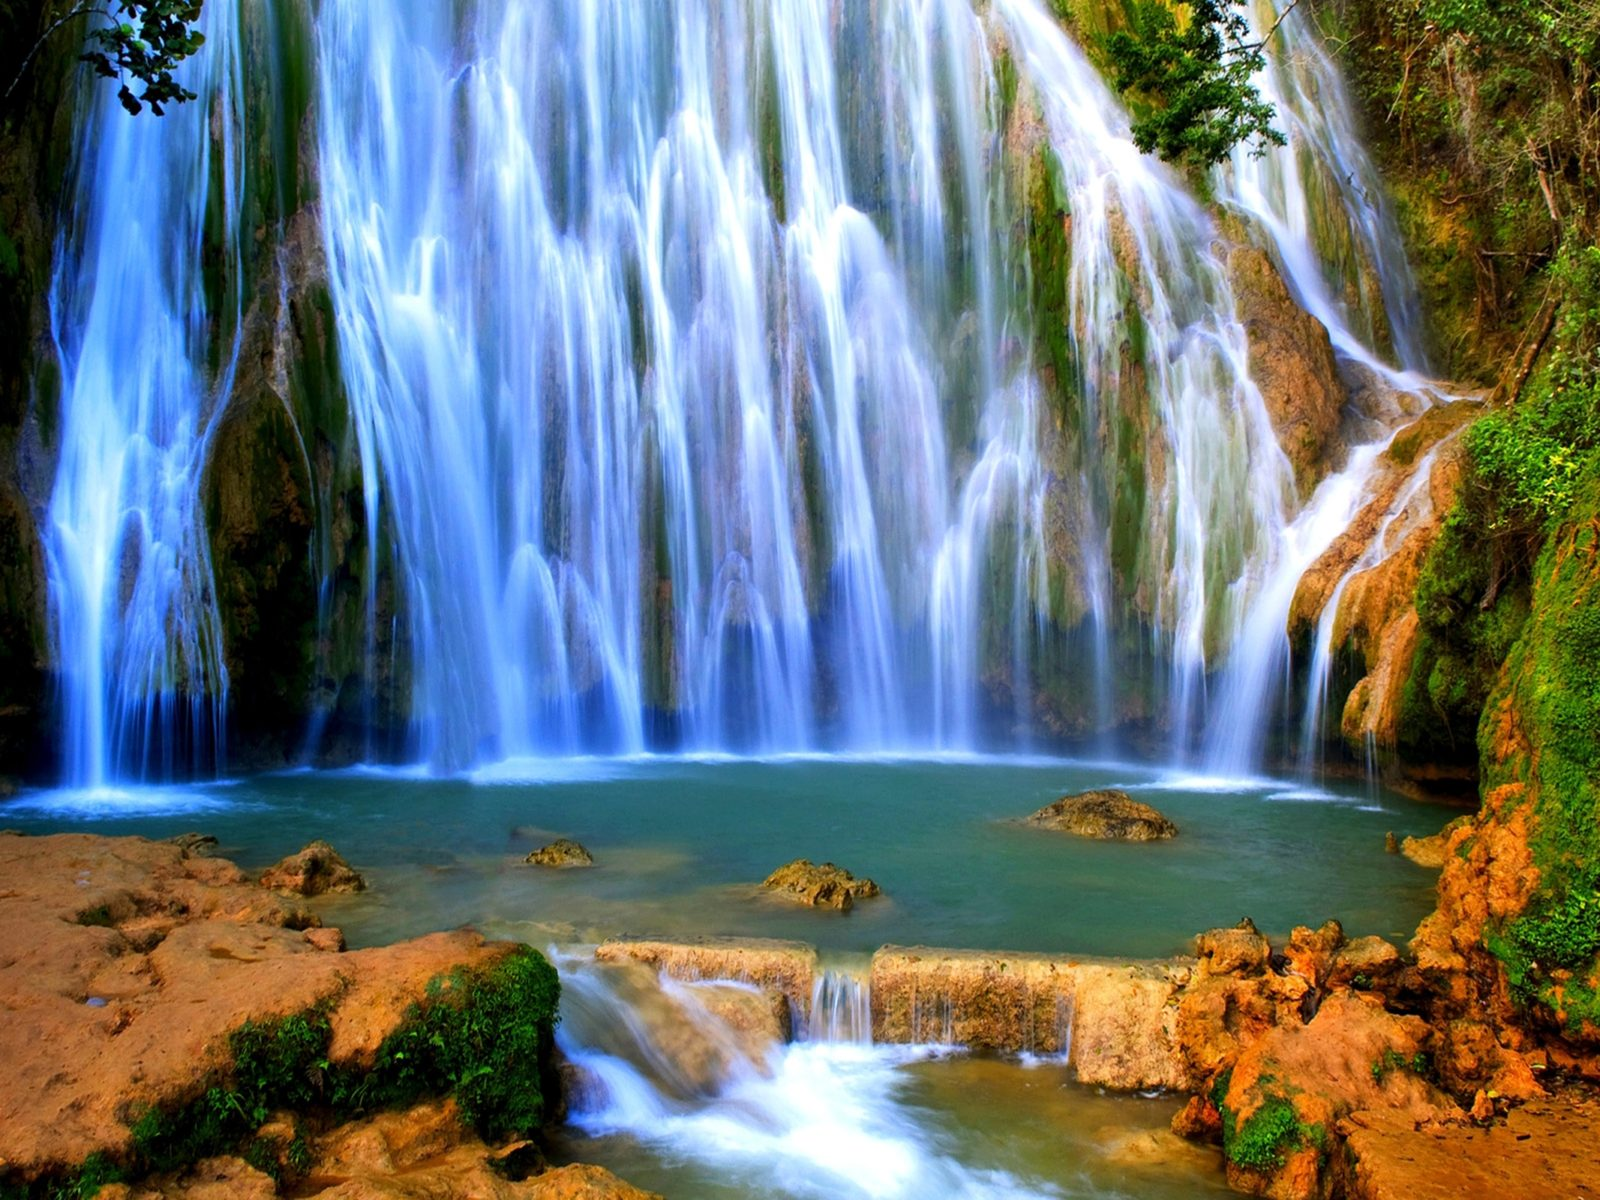 Beautiful Cars Hd Wallpapers Download Beautiful Hd Wallpaper Waterfall Rocks Forest 247018